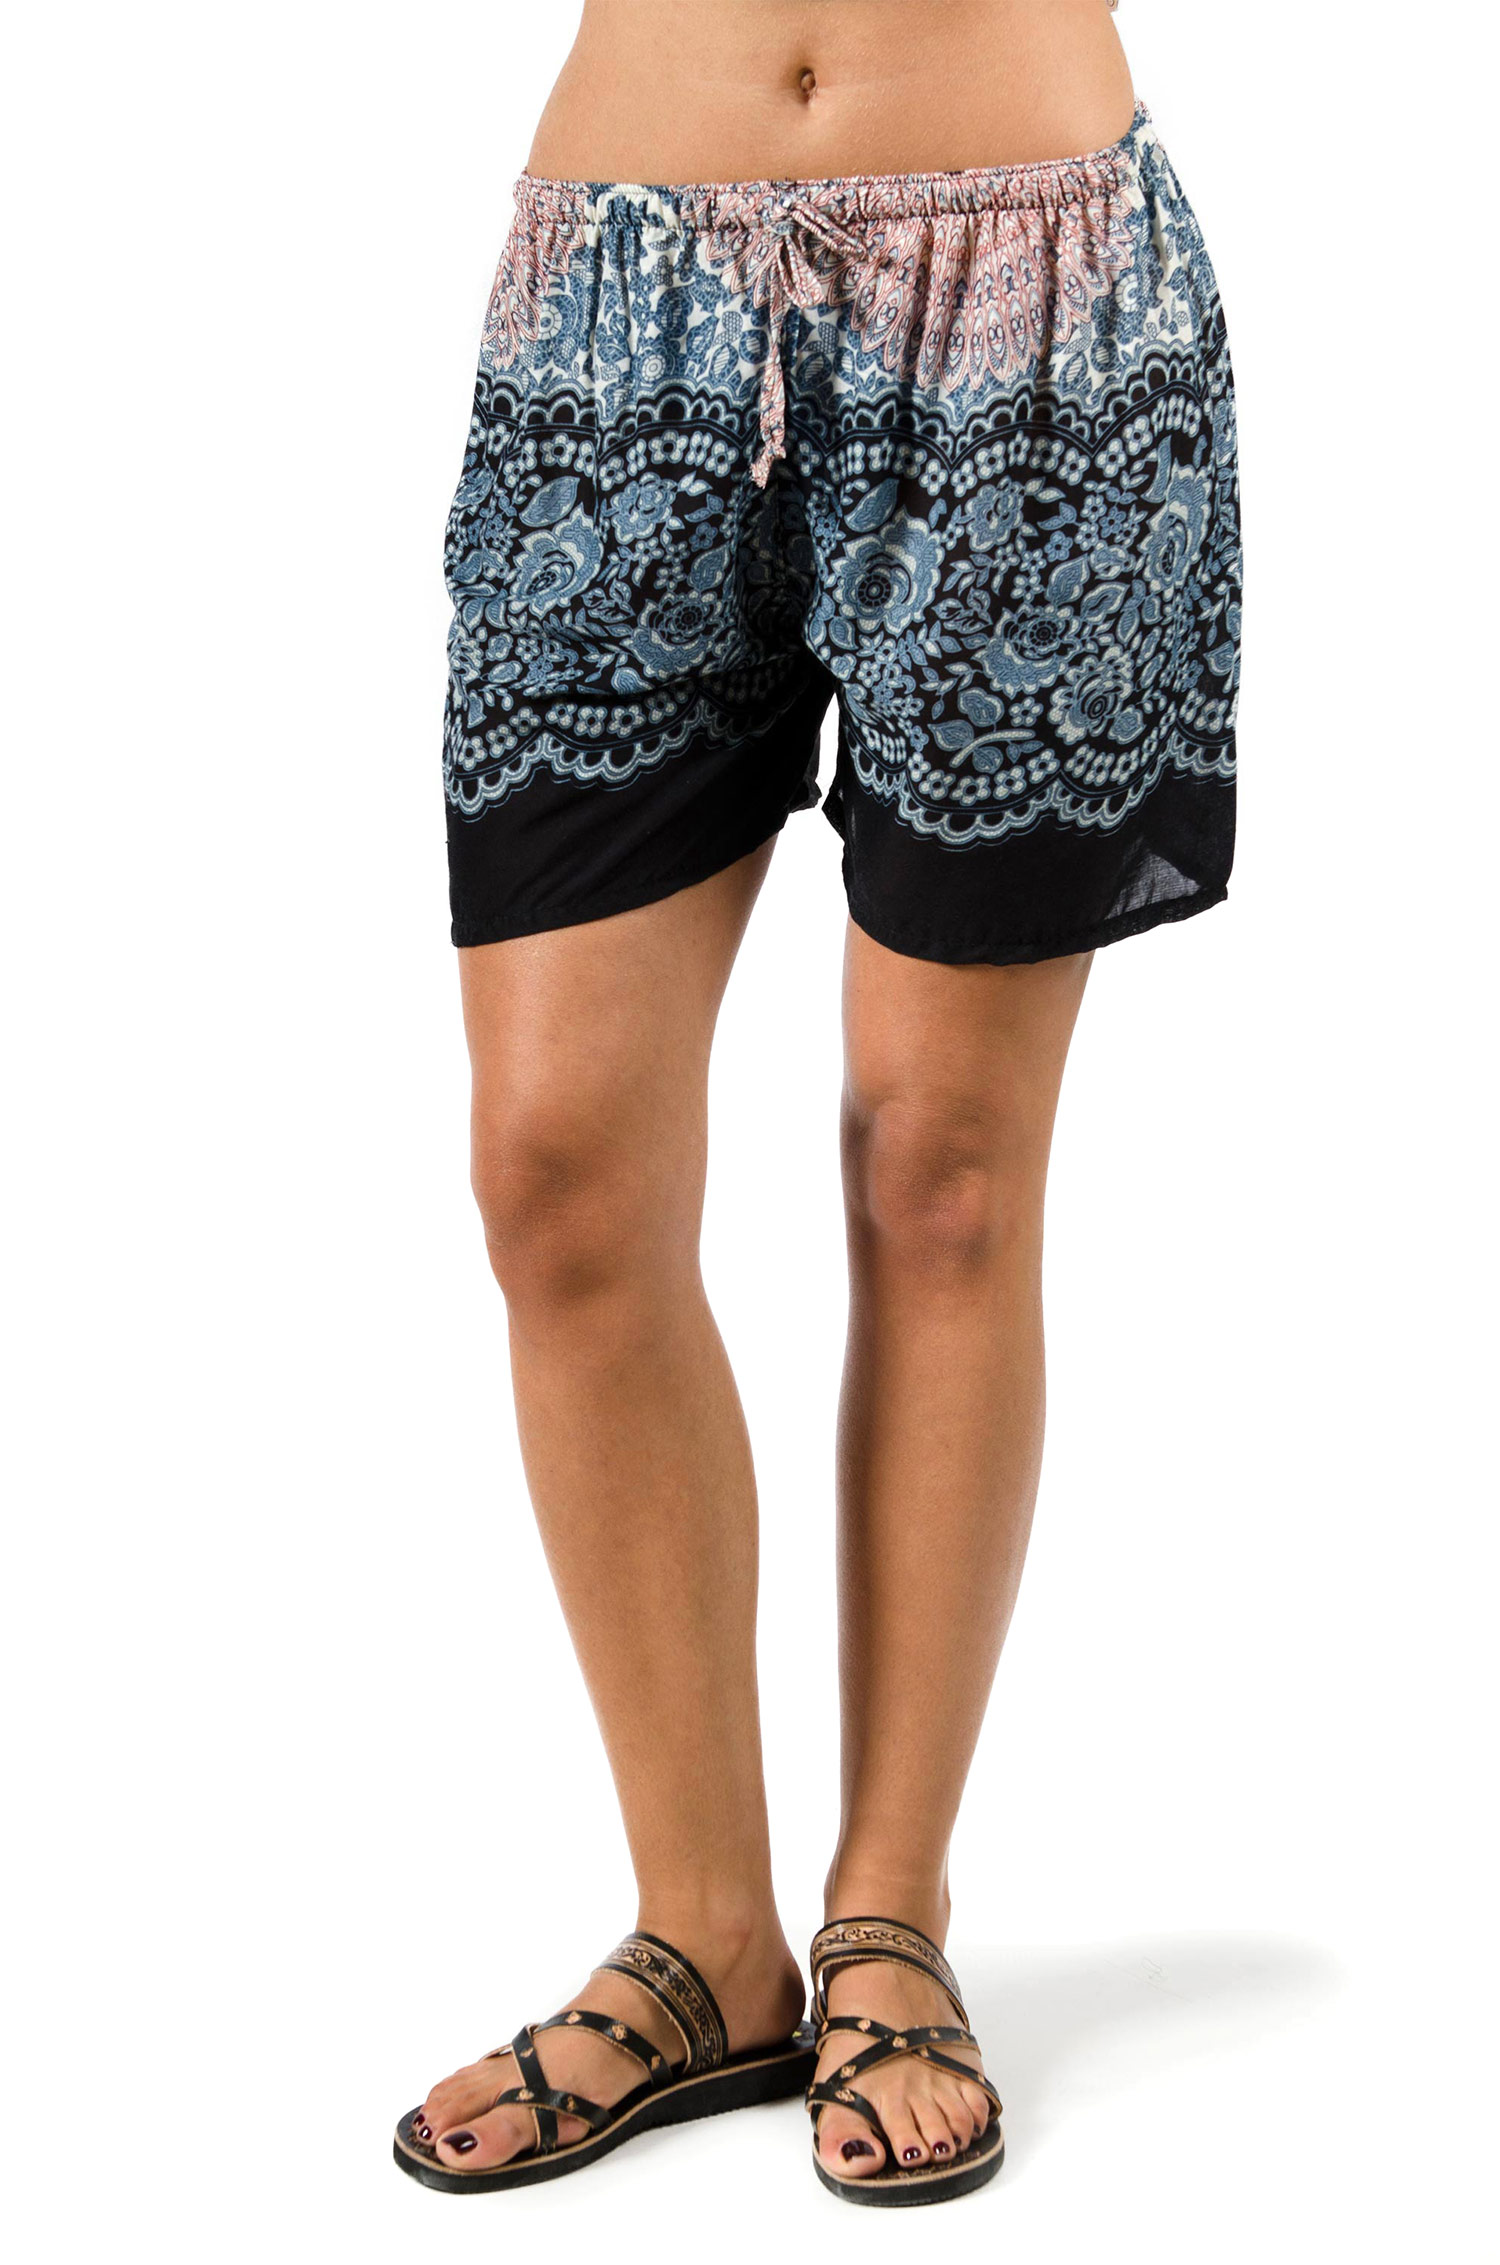 Shorts Rose Print, Grey - 3541Y